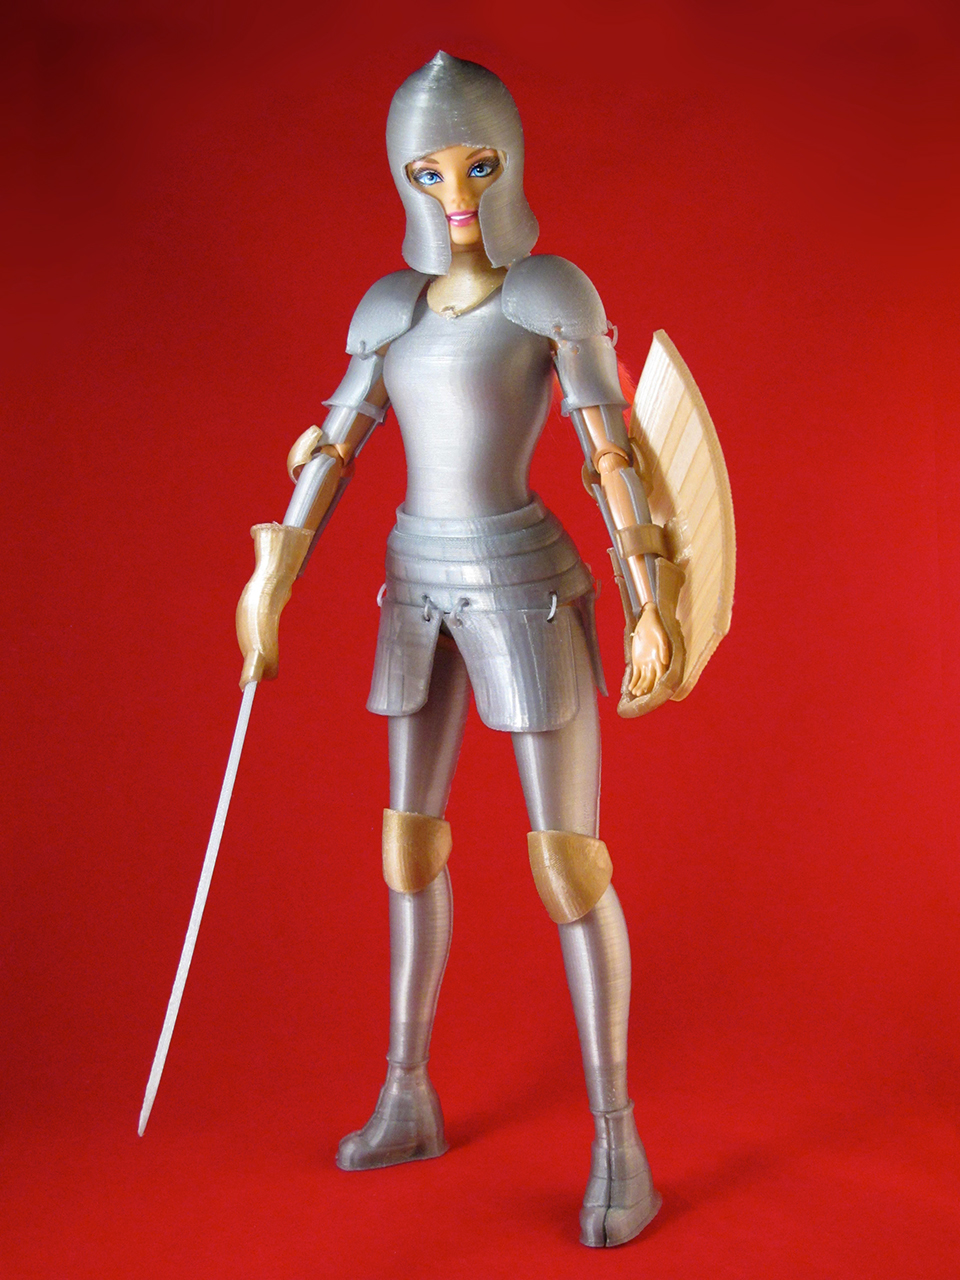 3d Printed Medieval Armor For Barbie Dolls Woman At Arms